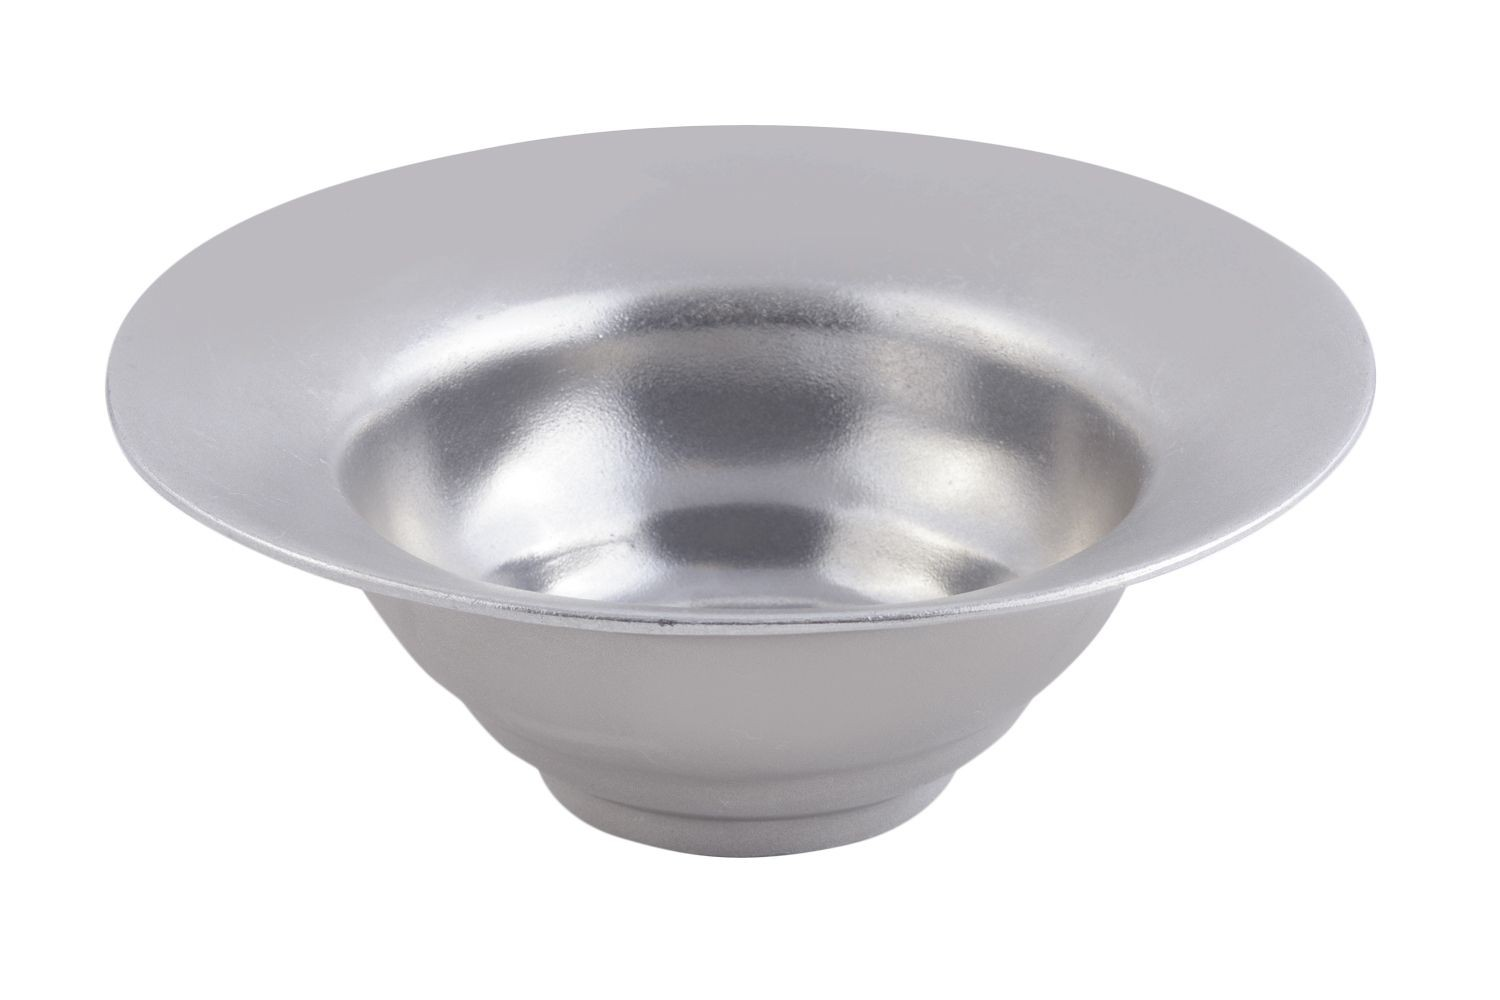 Bon Chef 9170P Wide Rim Bowl, Pewter Glo 1 Qt., 20 oz.